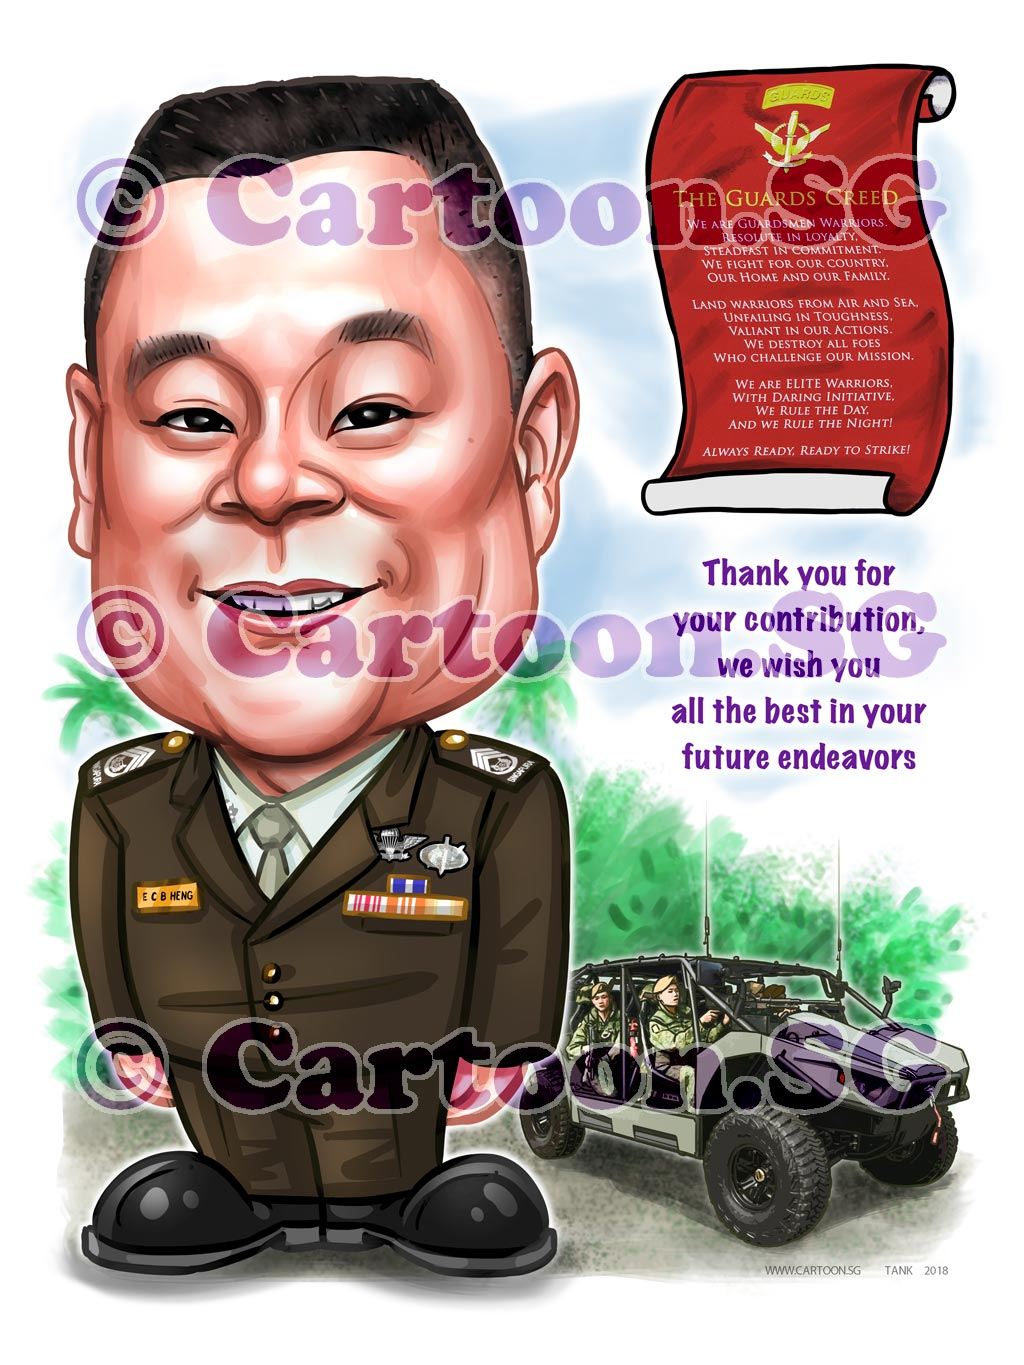 2018-02-14-Caricature-Singapore-digital-farewell-boss-gift-army-SAF-guard-vehicle-uniform.jpg